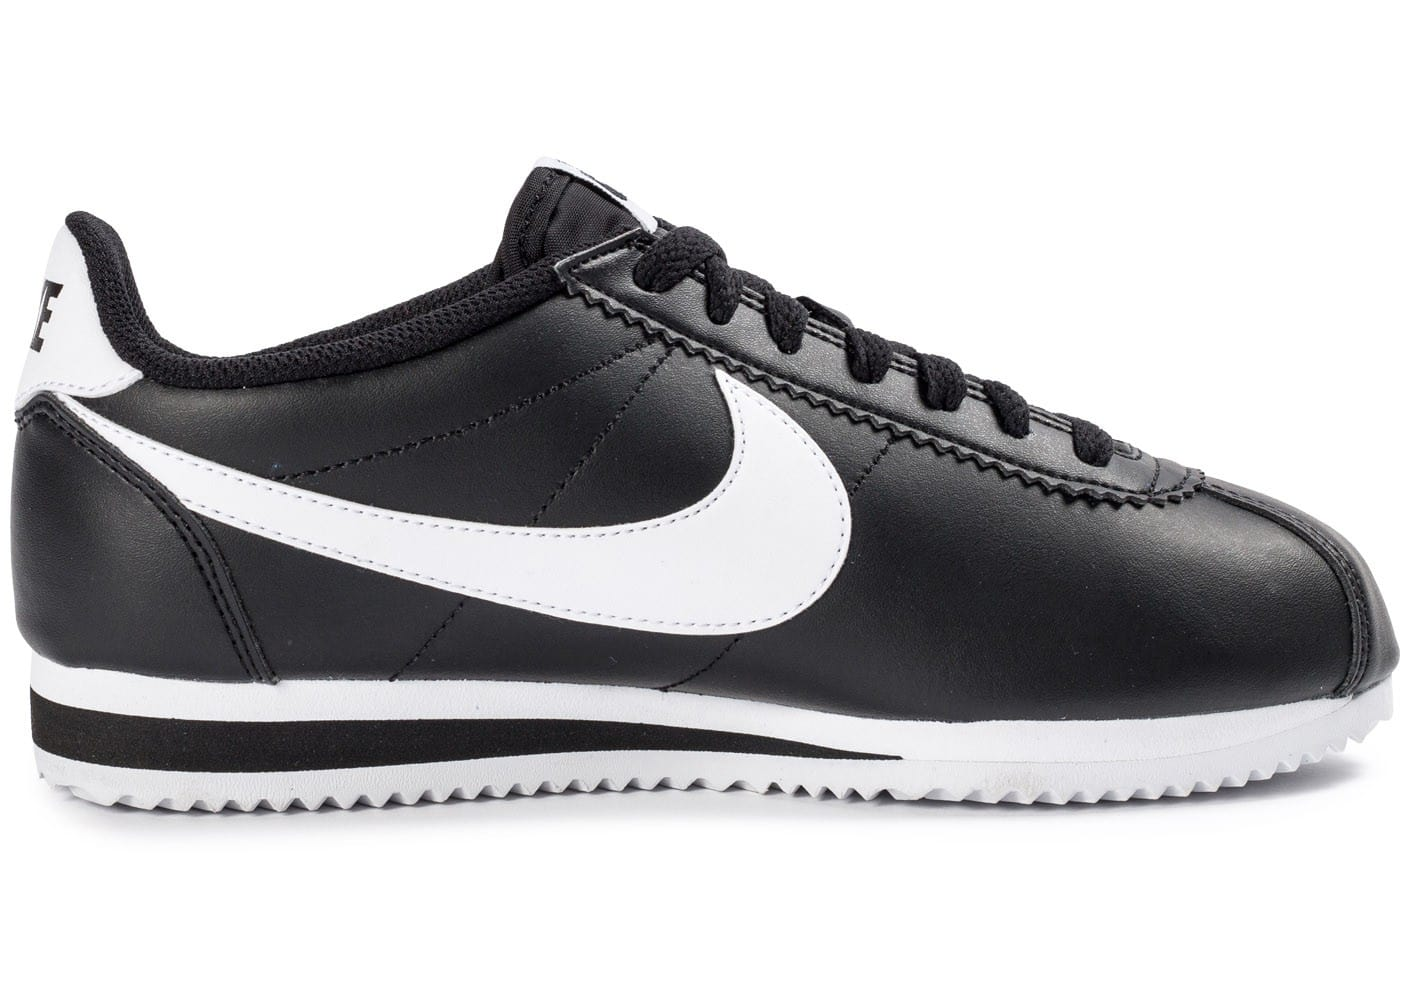 nike classic cortez leather noire et blanche chaussures toutes les baskets sold es chausport. Black Bedroom Furniture Sets. Home Design Ideas